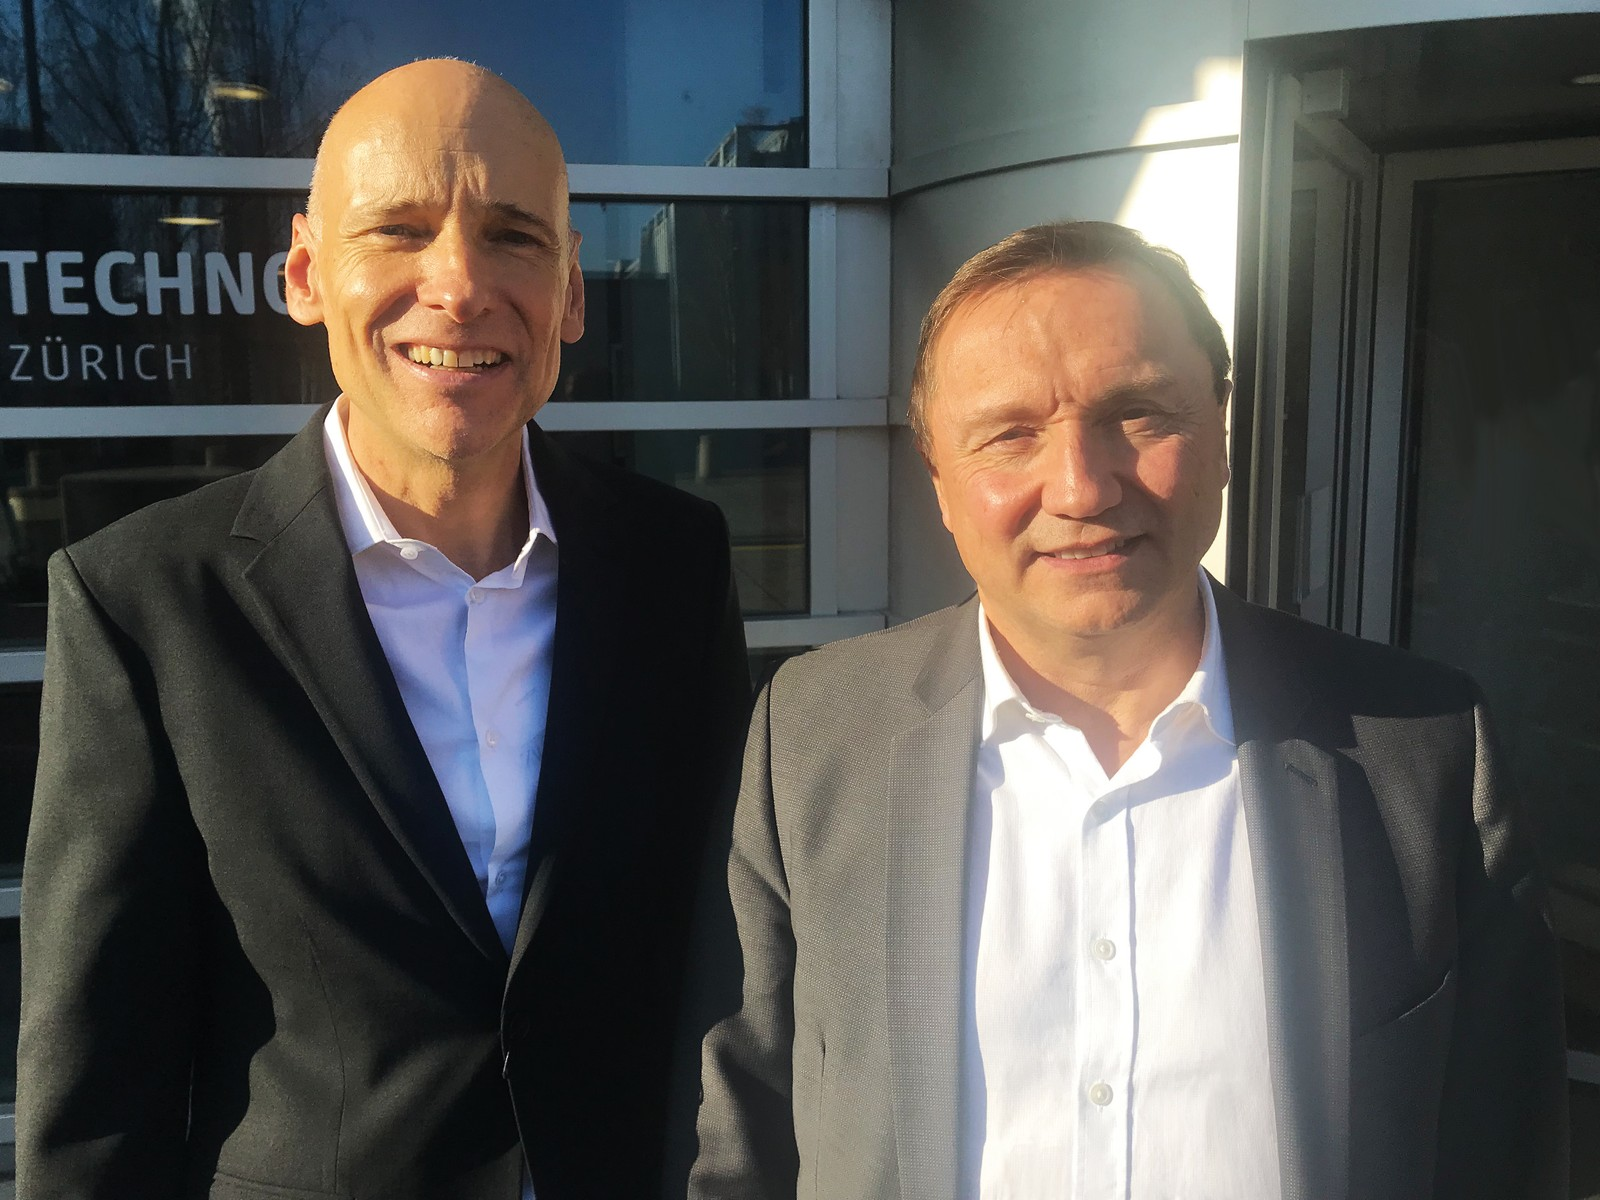 Dr. Waldemar Kubli (l.), Gründer und Chief Product Officer (CPO) der AutoForm-Gruppe und Olivier Leteurtre (r.), Chief Executive Officer (CEO) der Autoform-Gruppe.